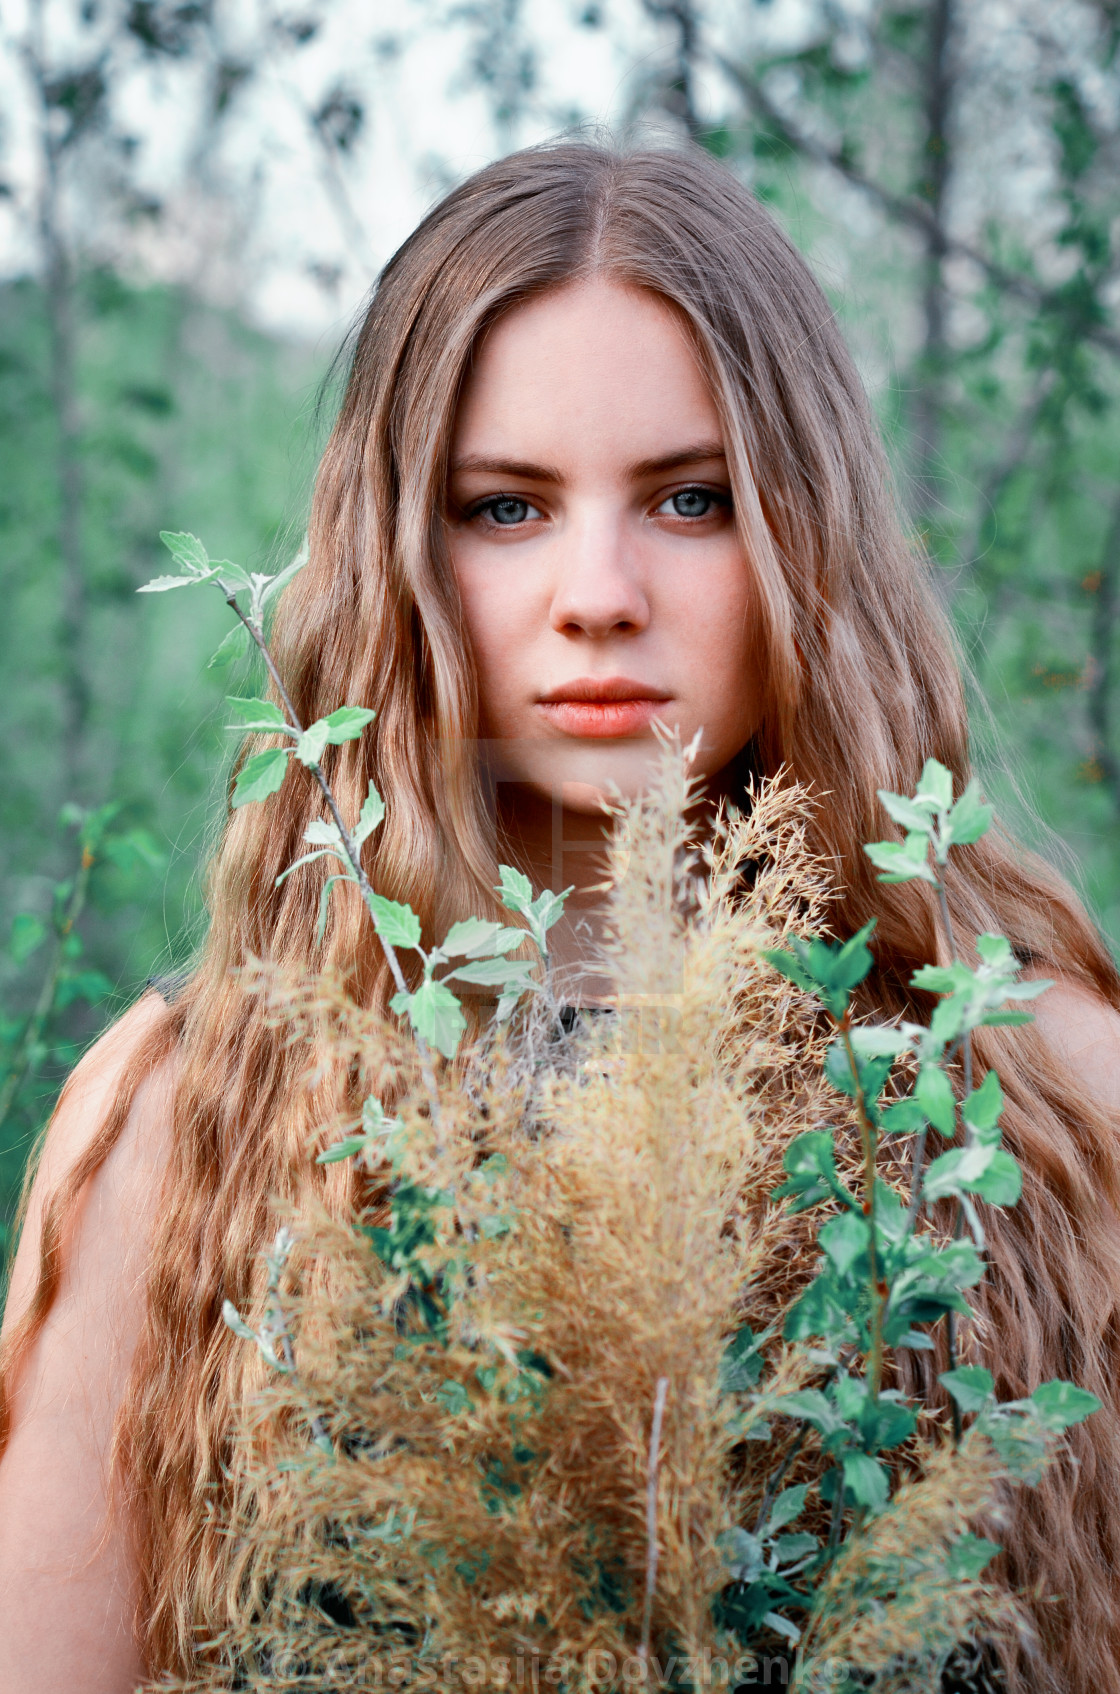 embodiment.spring time.awesome,excellent,beautiful,nice girl with